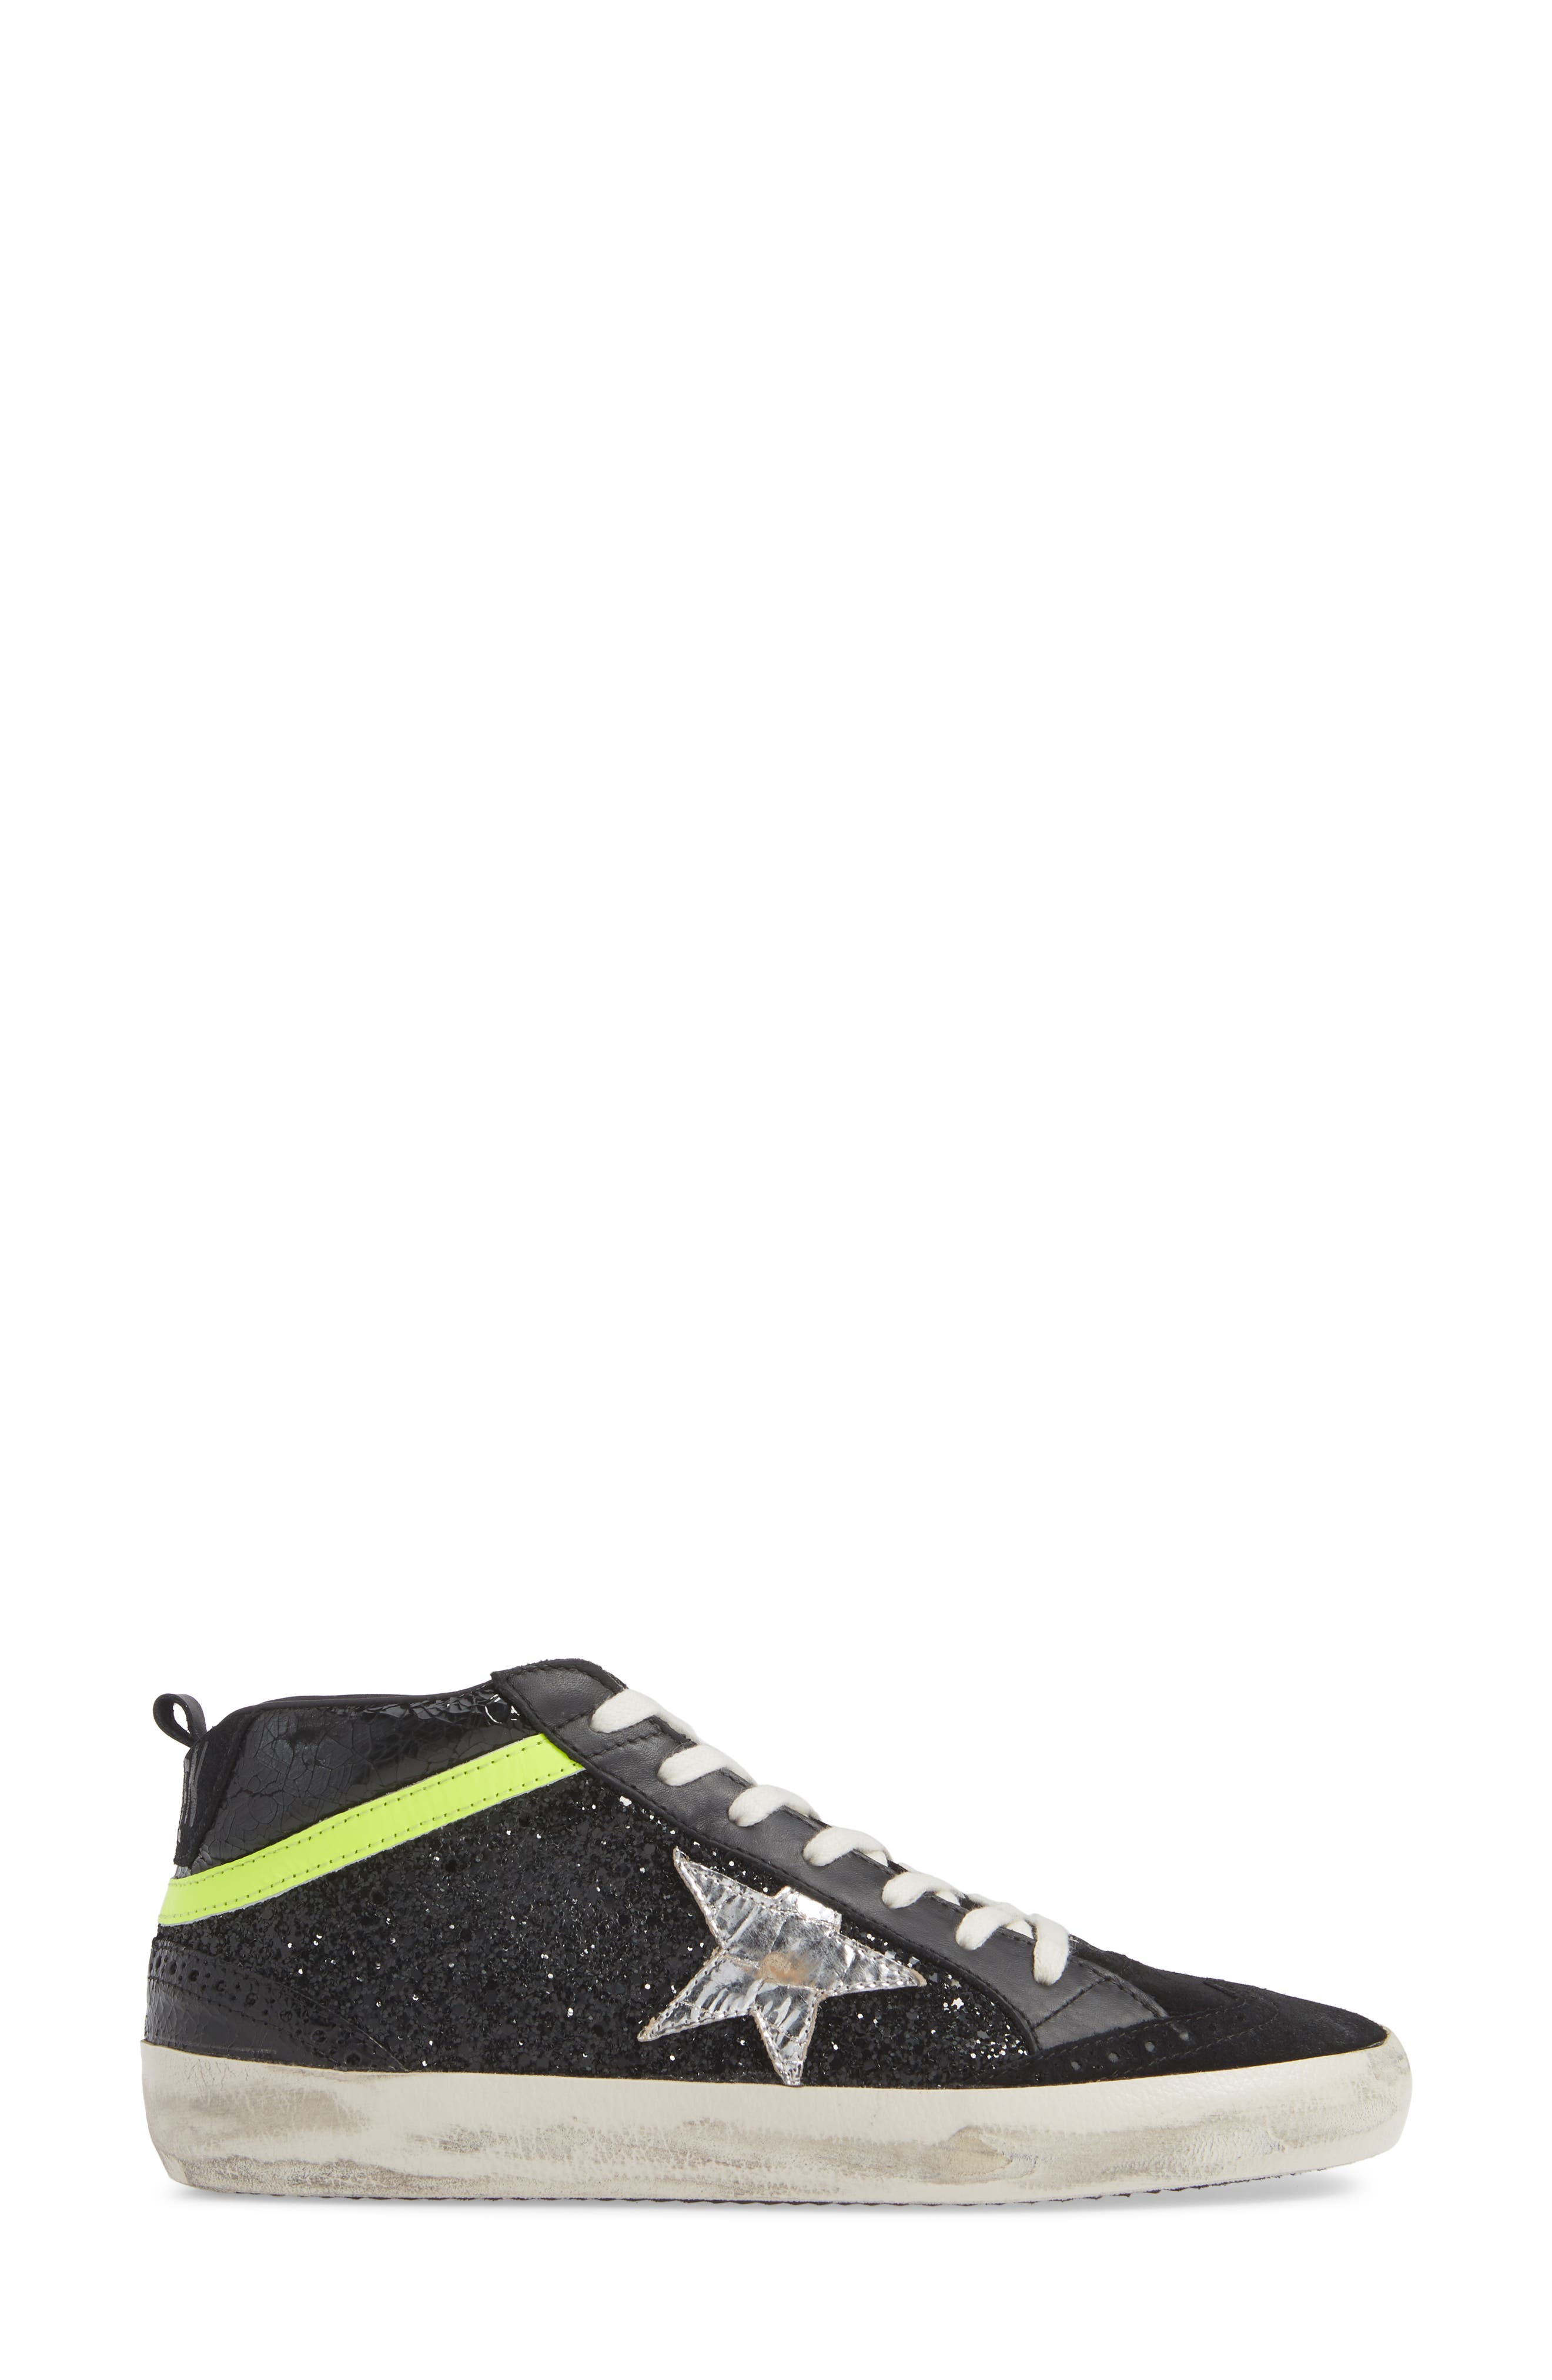 Mid Top Sneaker,                             Alternate thumbnail 3, color,                             BLACK/ YELLOW/ SILVER